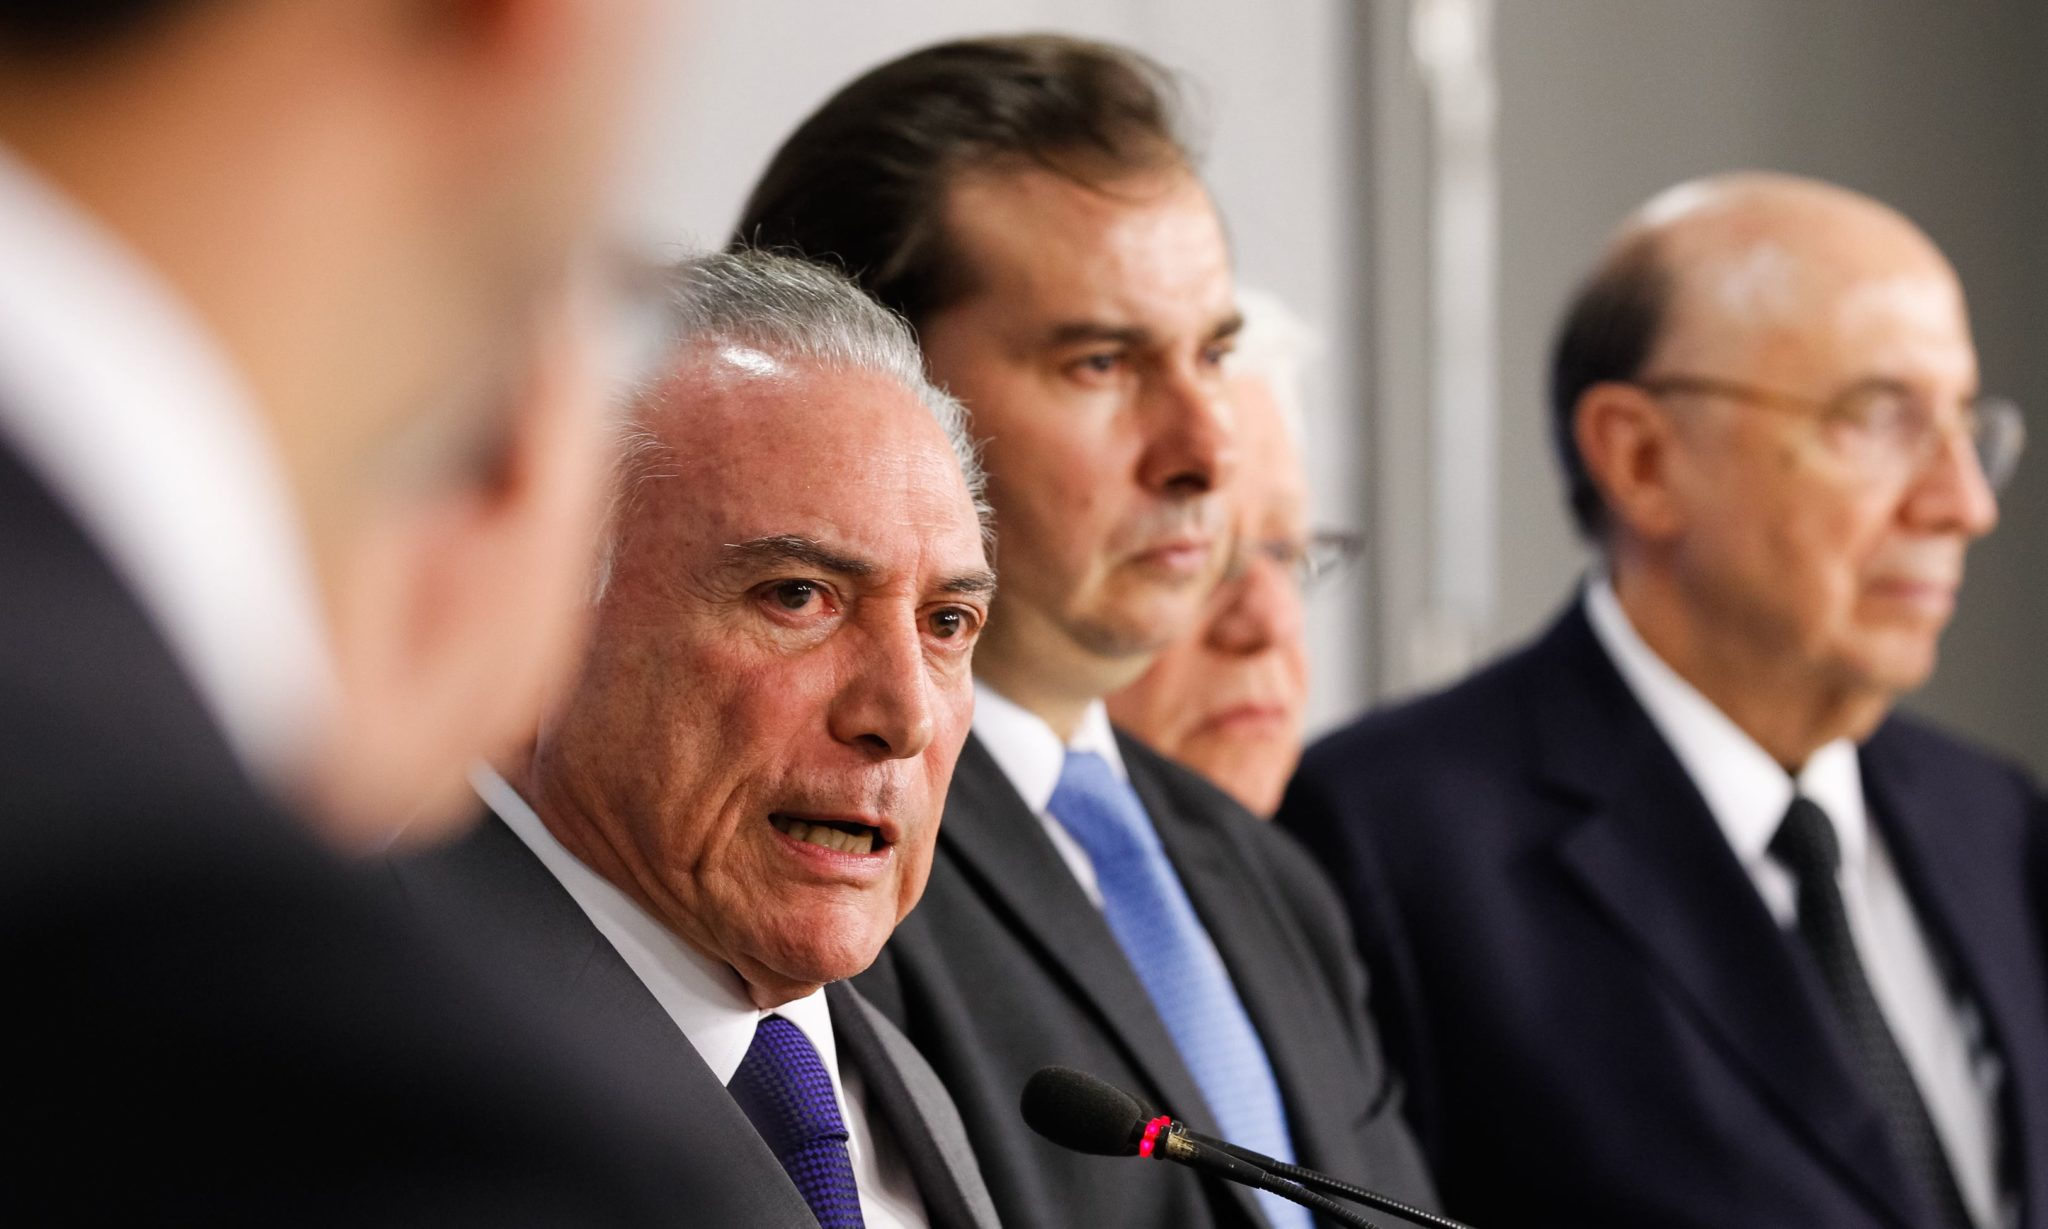 michel temer brazil pension reform